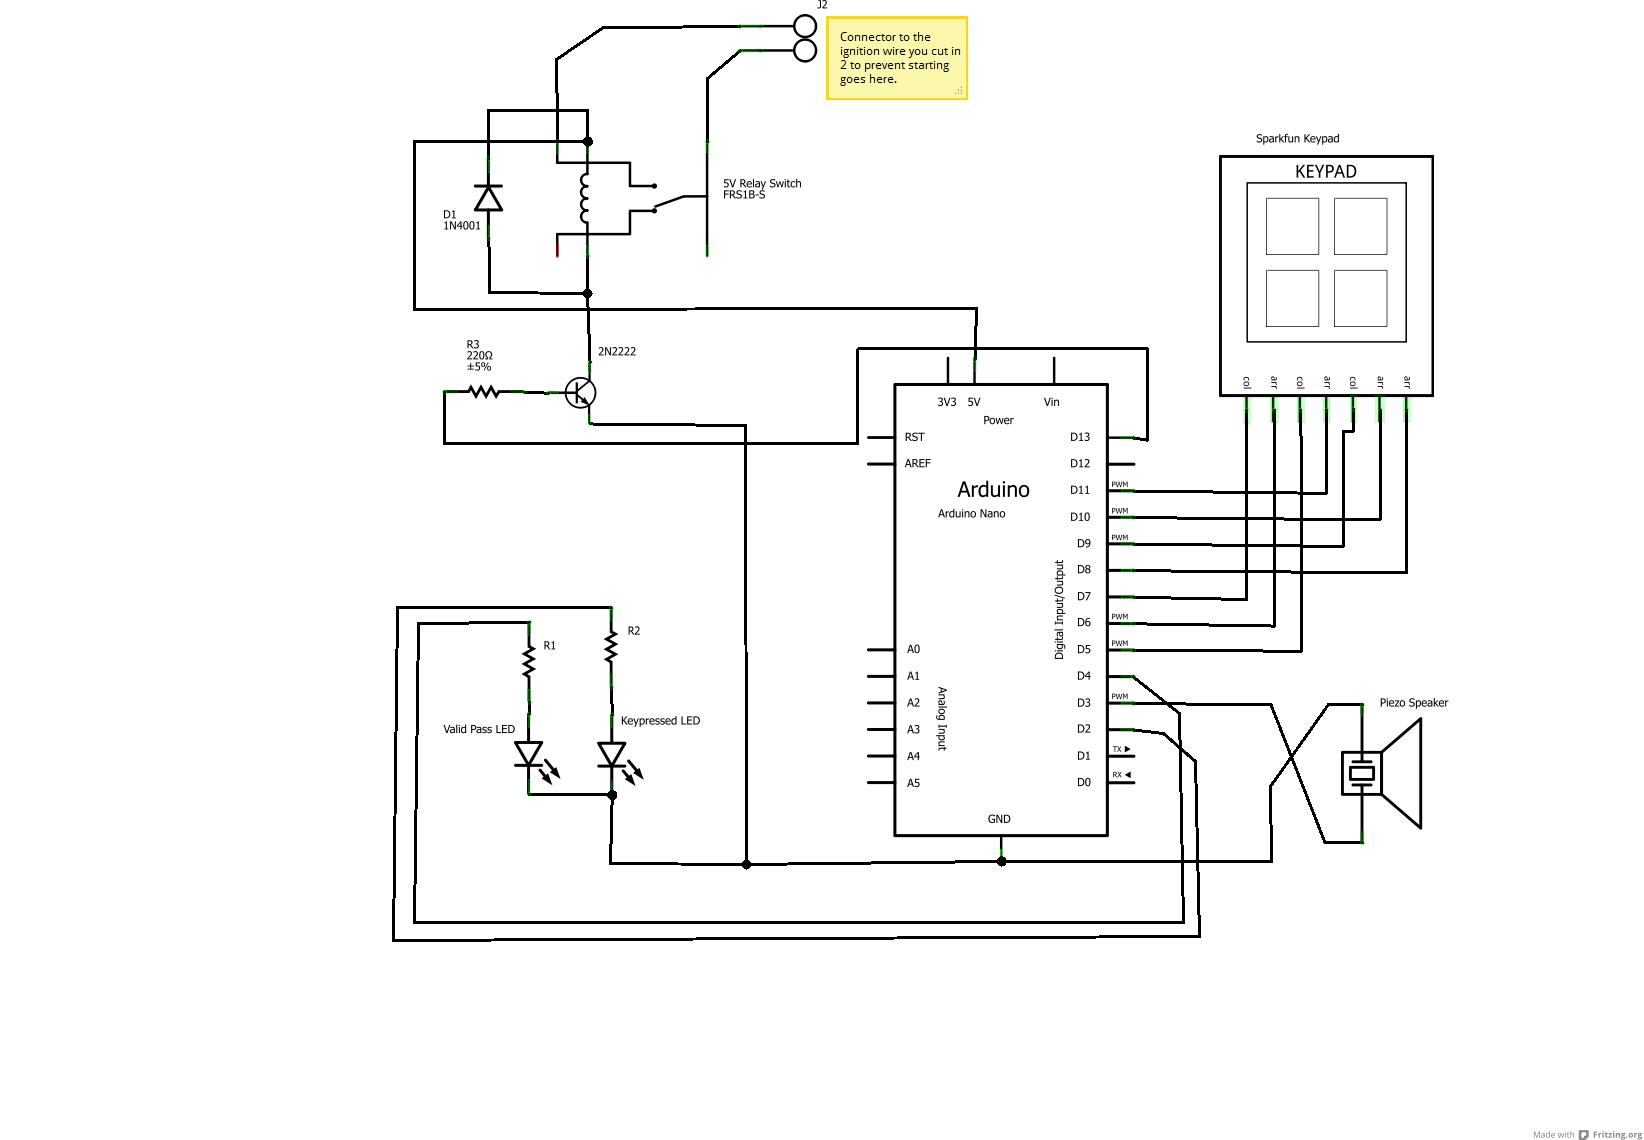 bluetooth headset circuit diagram  u2013 readingrat net